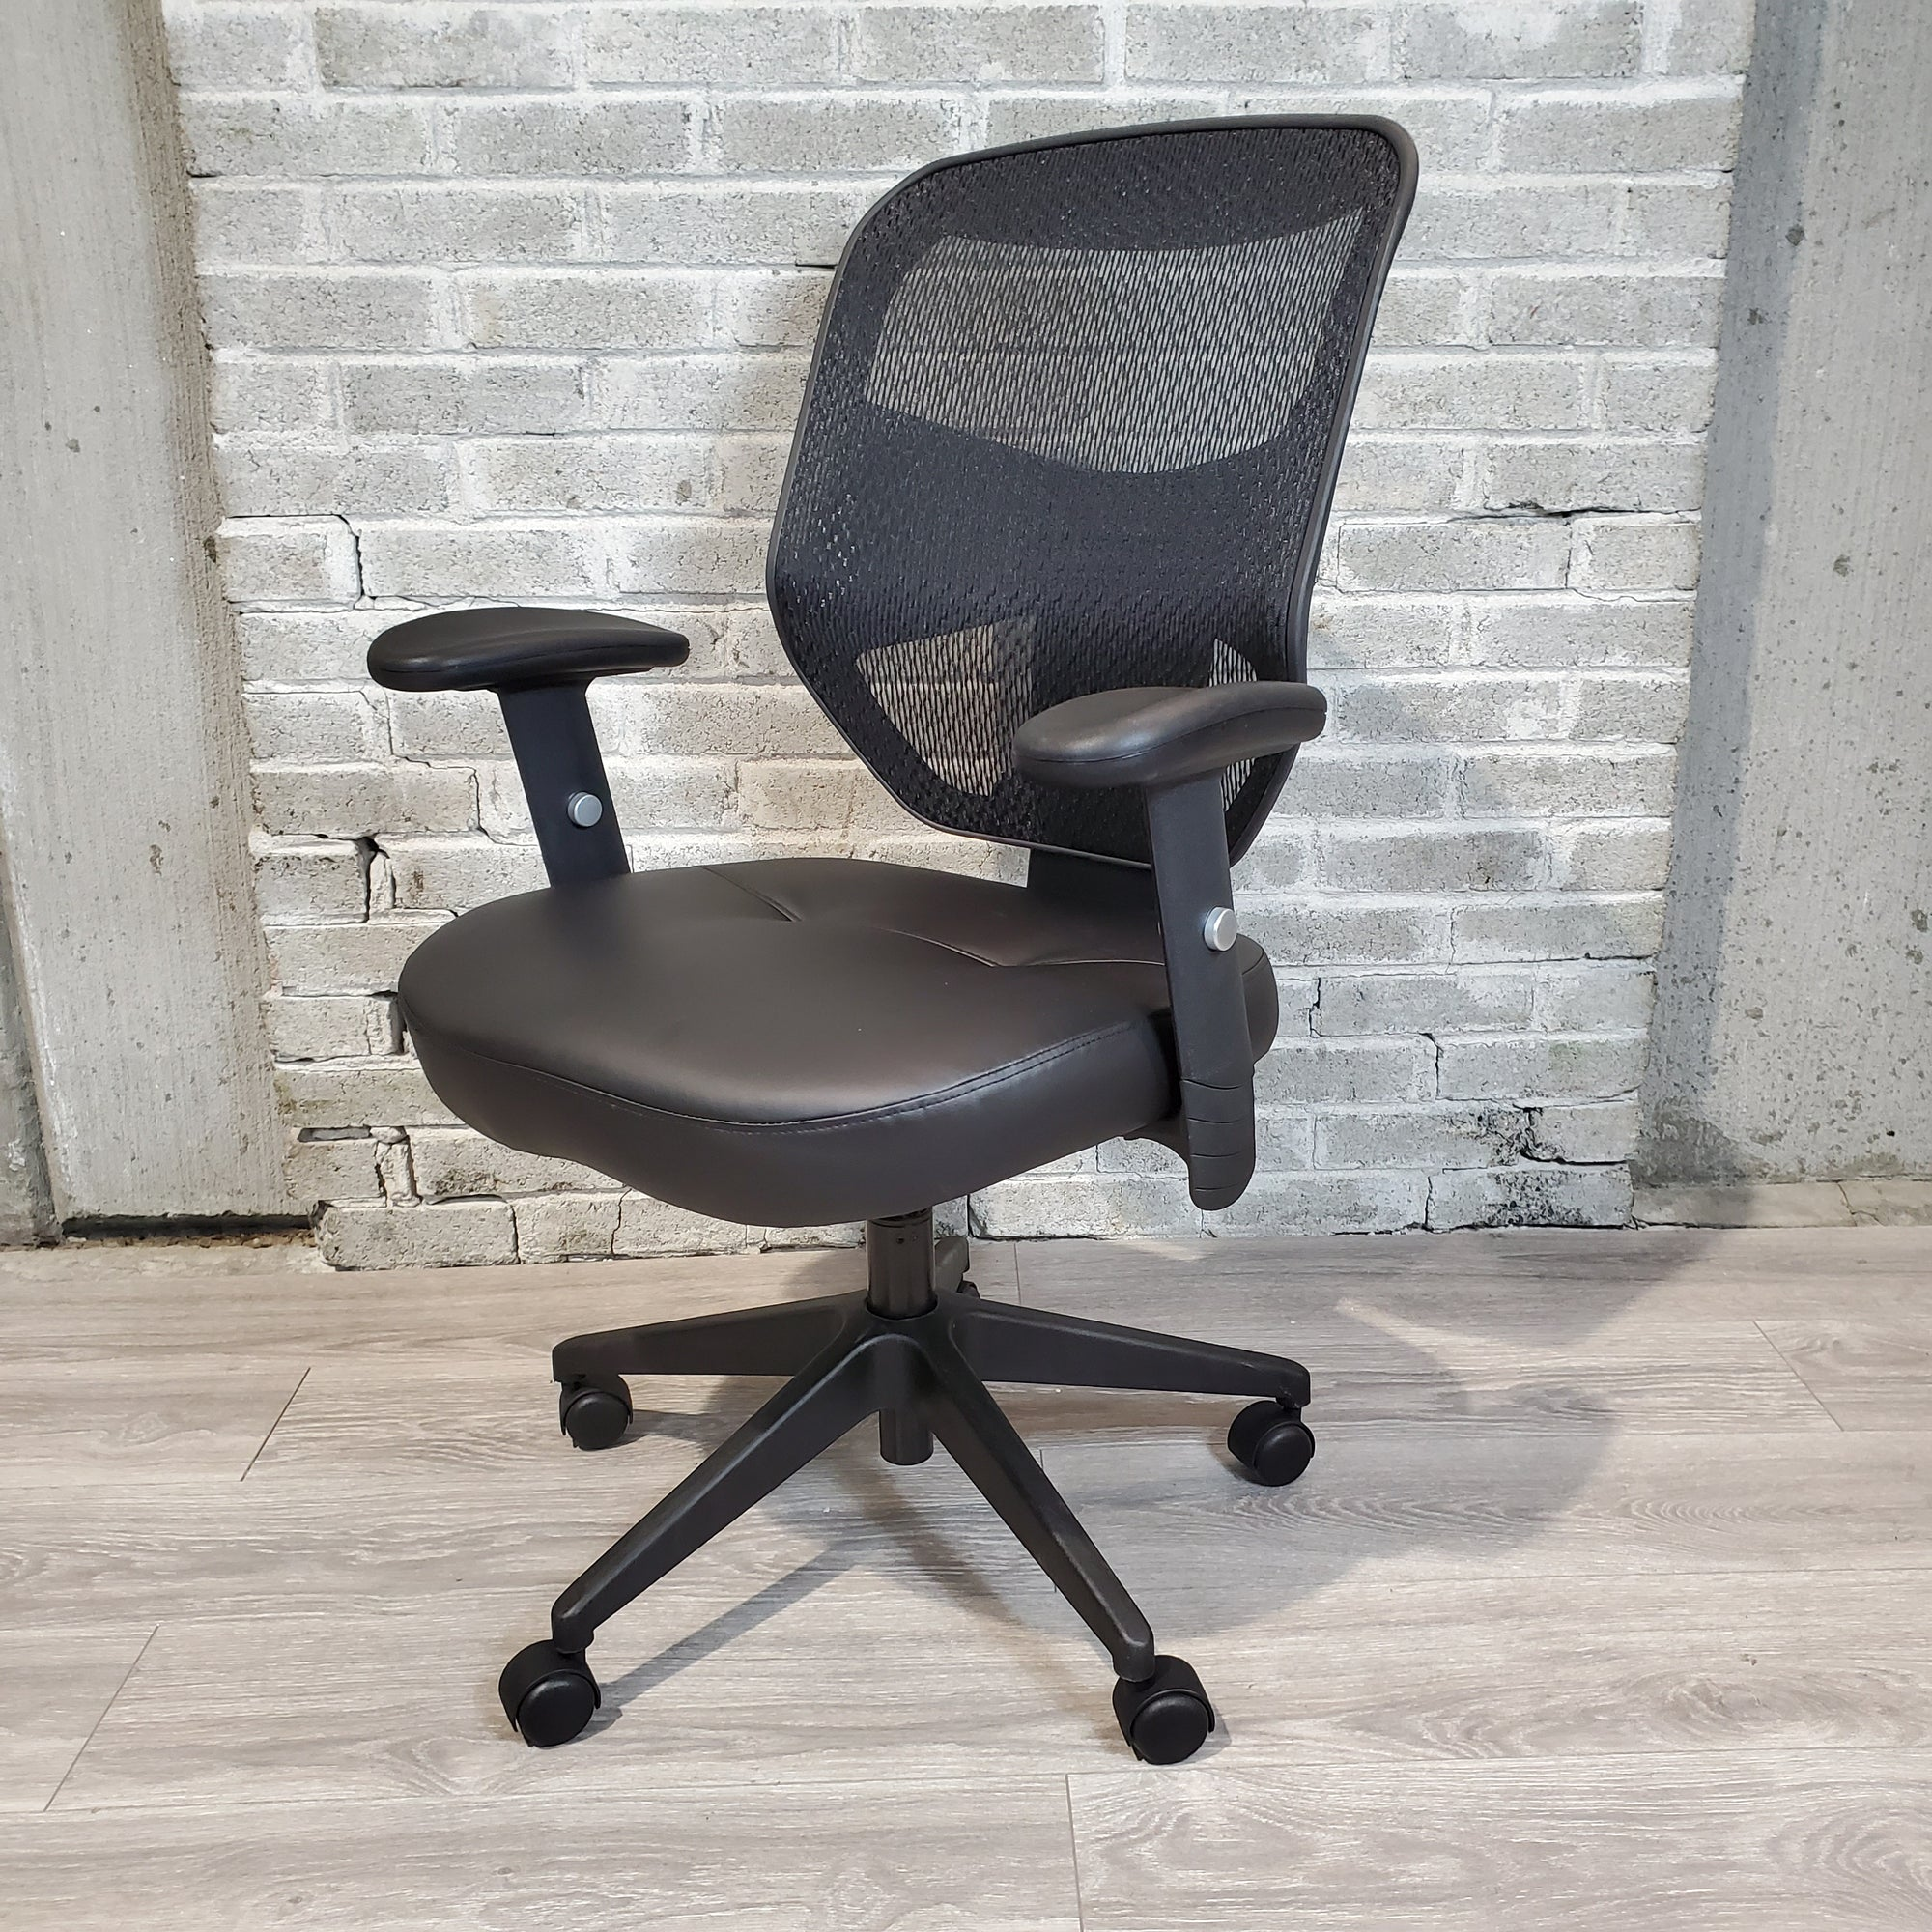 Pre-Owned - CLOSEOUT HON Prominent Task Chair - Duckys Office Furniture